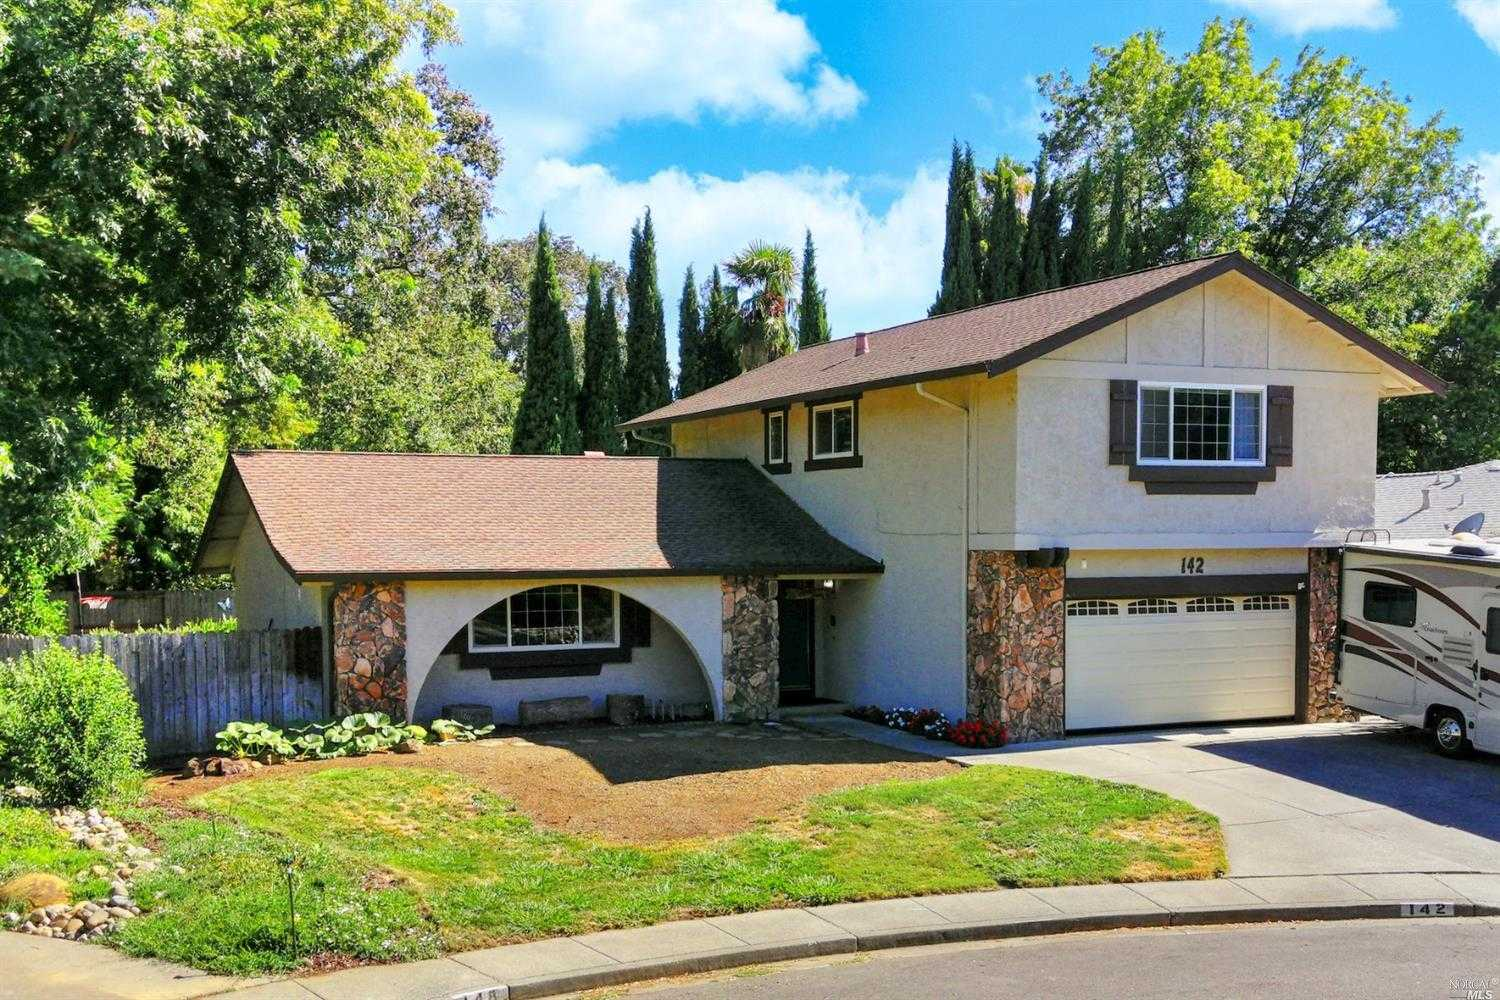 $599,000 - 4Br/3Ba -  for Sale in Vacaville